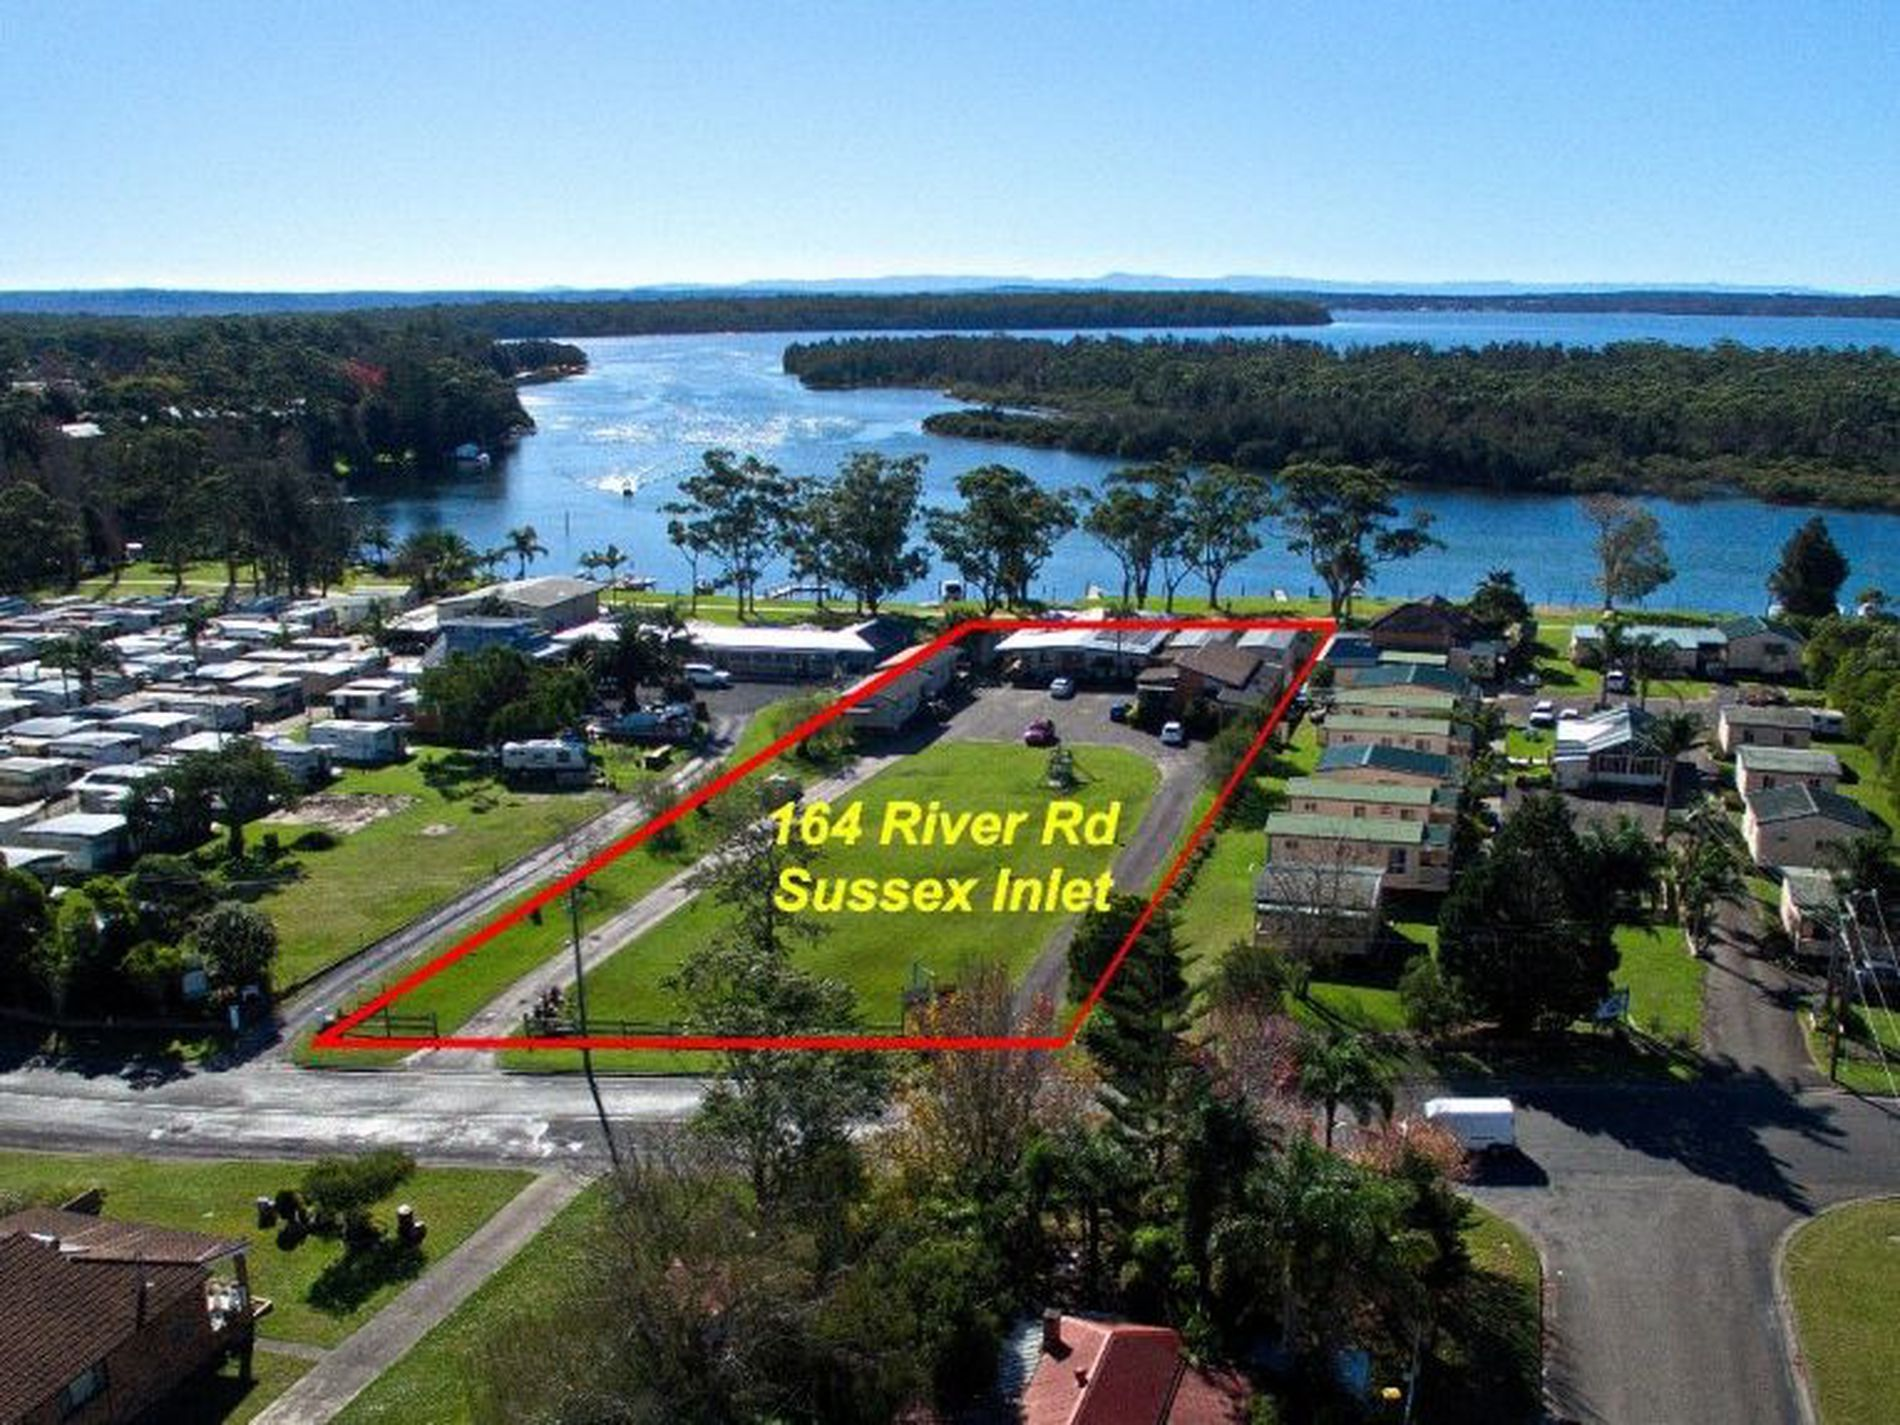 164 River Rd, Sussex Inlet